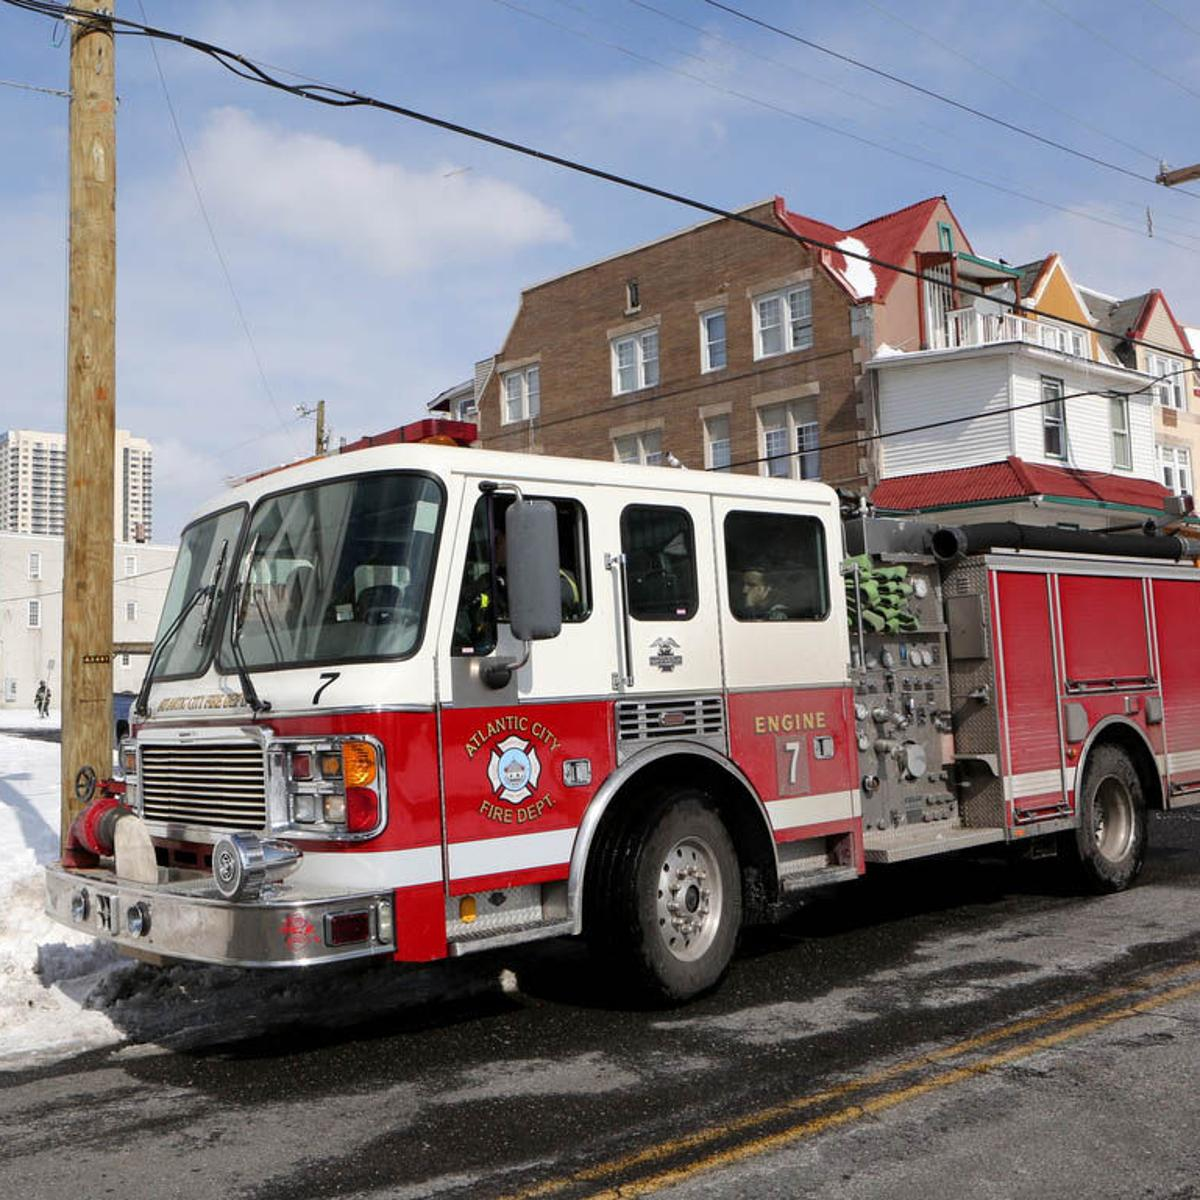 A C  won't try to expand grant that could save firefighter